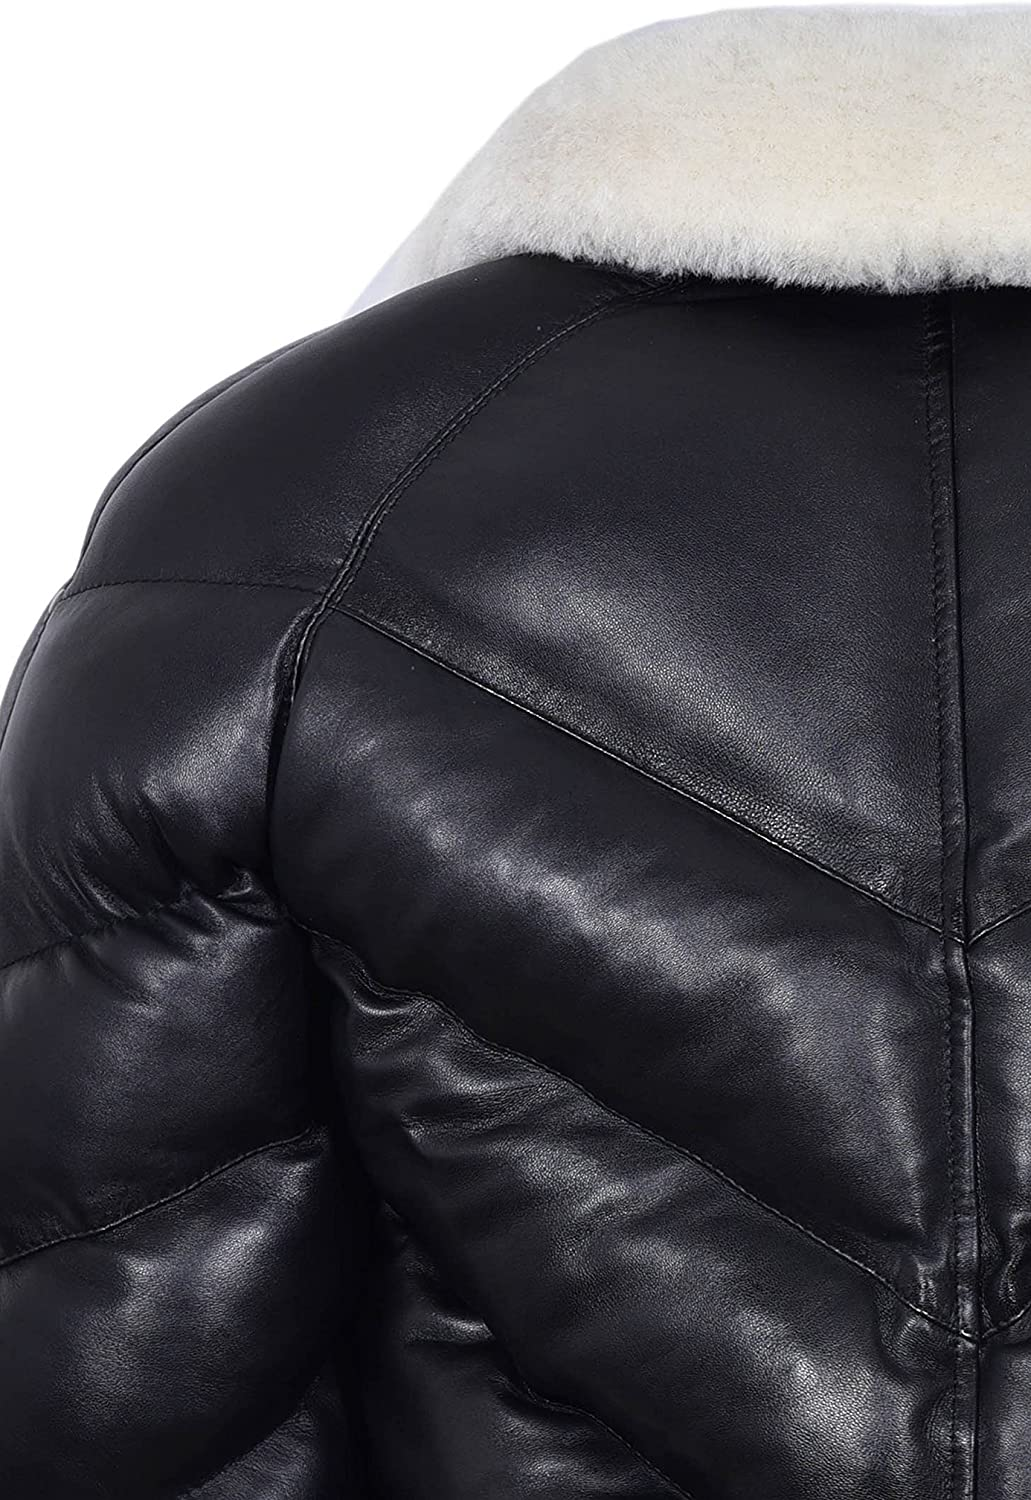 ACE Mens Puffer Real Leather Jacket Black with White Real Sheep Hair On Collar Winter Warm